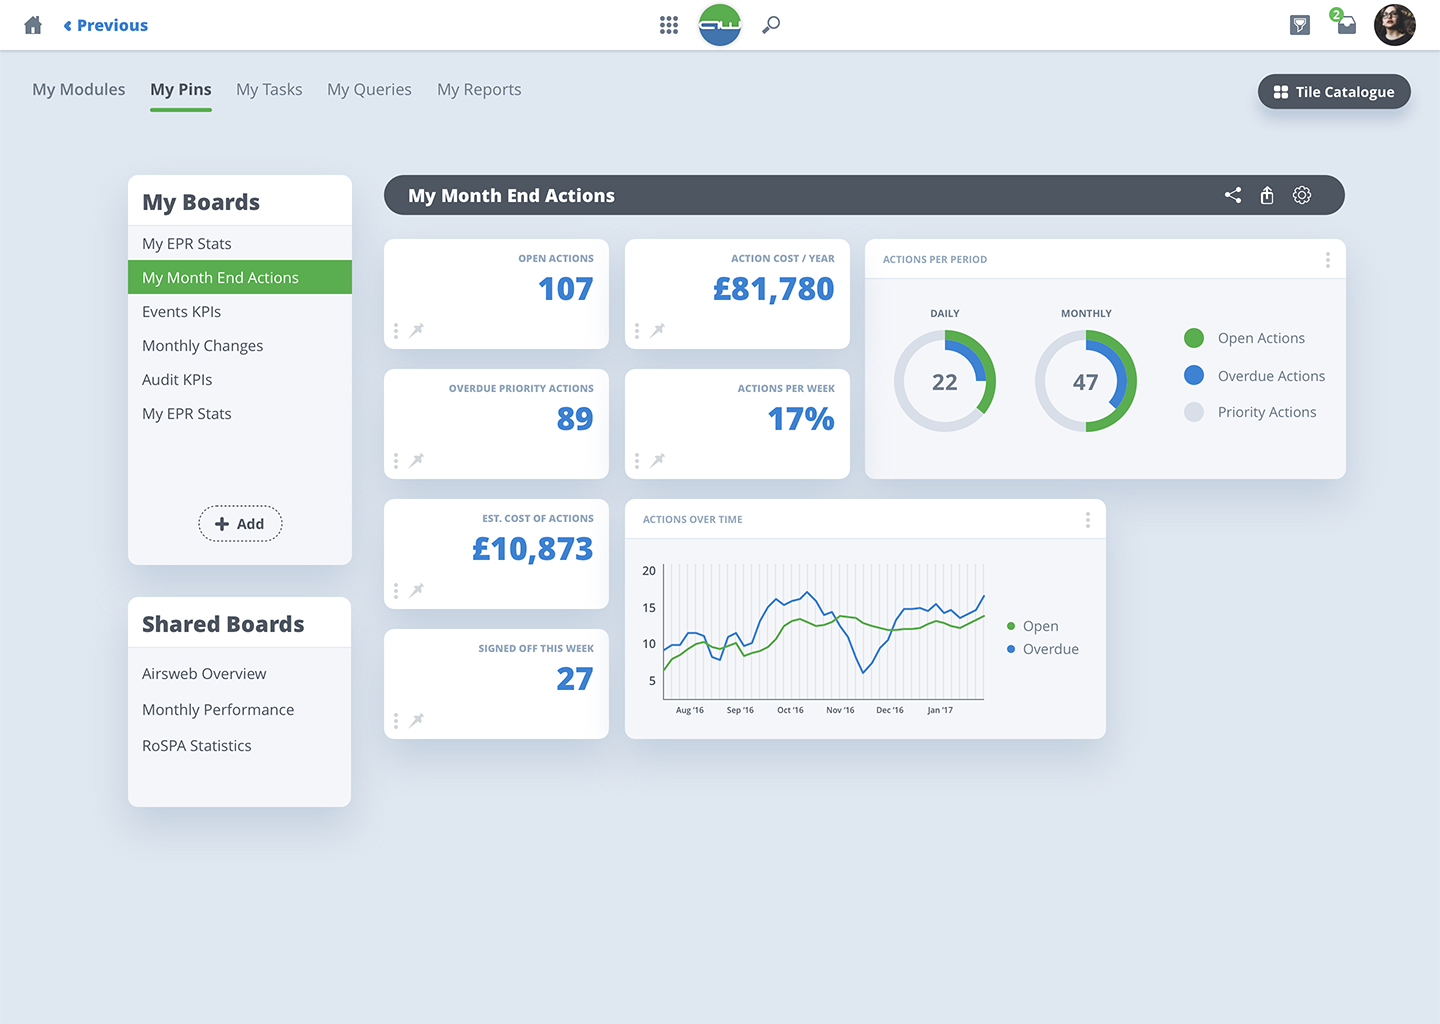 AVA month end actions dashboard